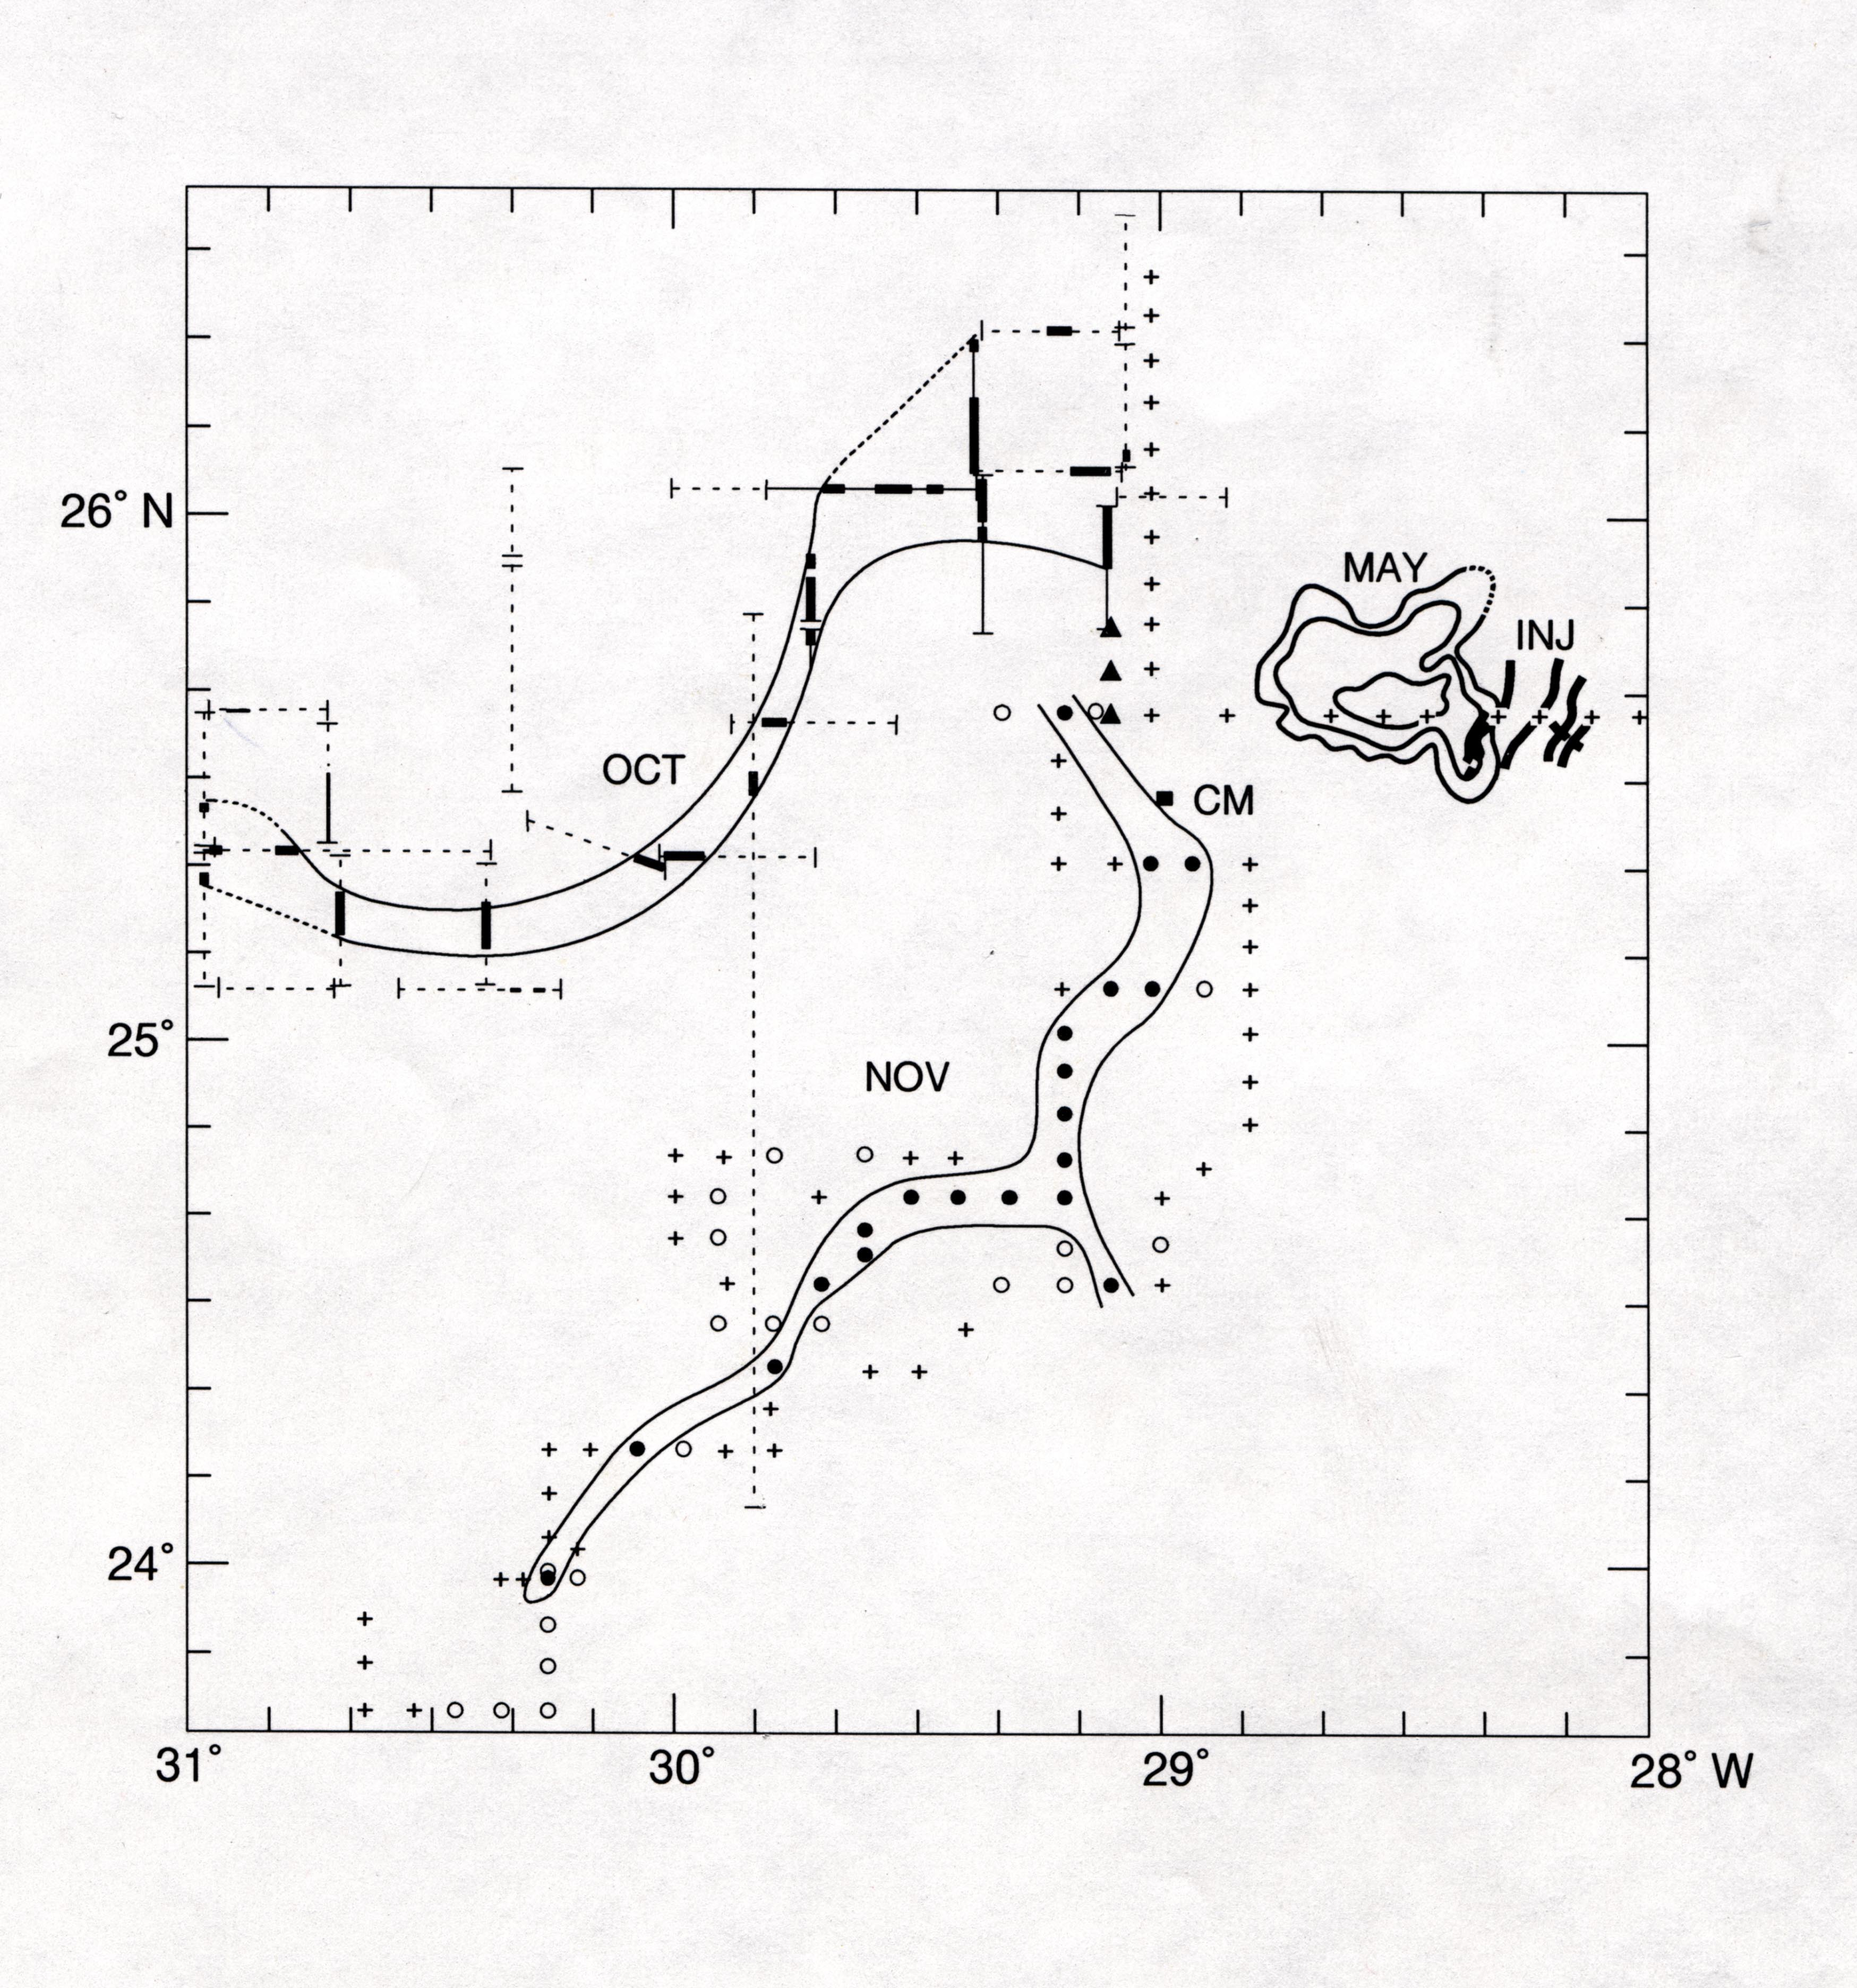 Graph of Tracer Patch Studied During Oceanus Cruises in 1992